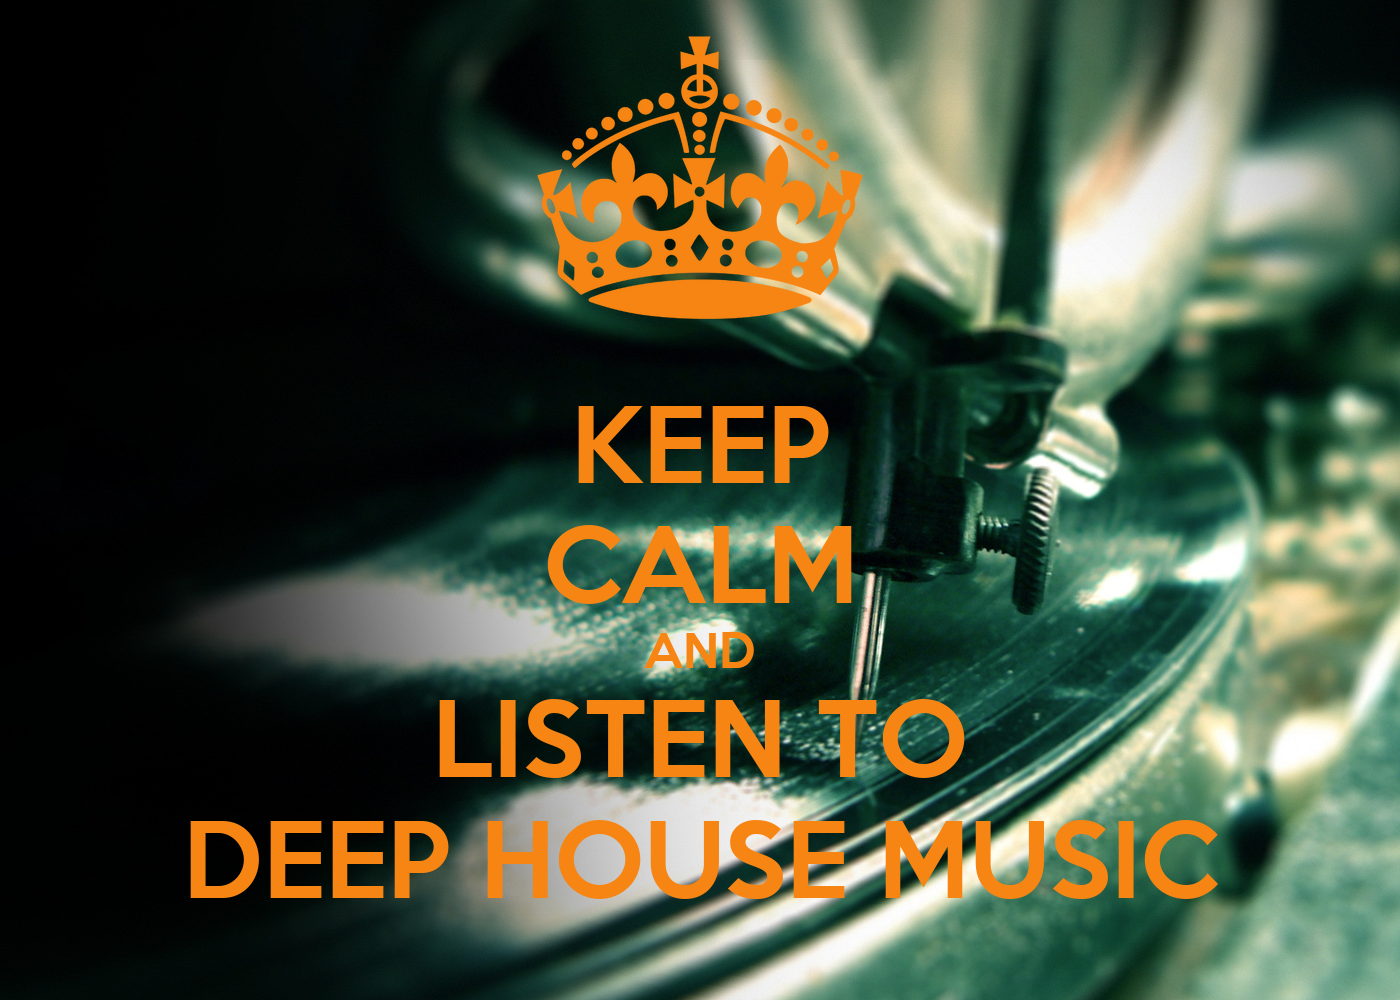 Keep calm and listen to deep house music poster cristian for Listen to house music